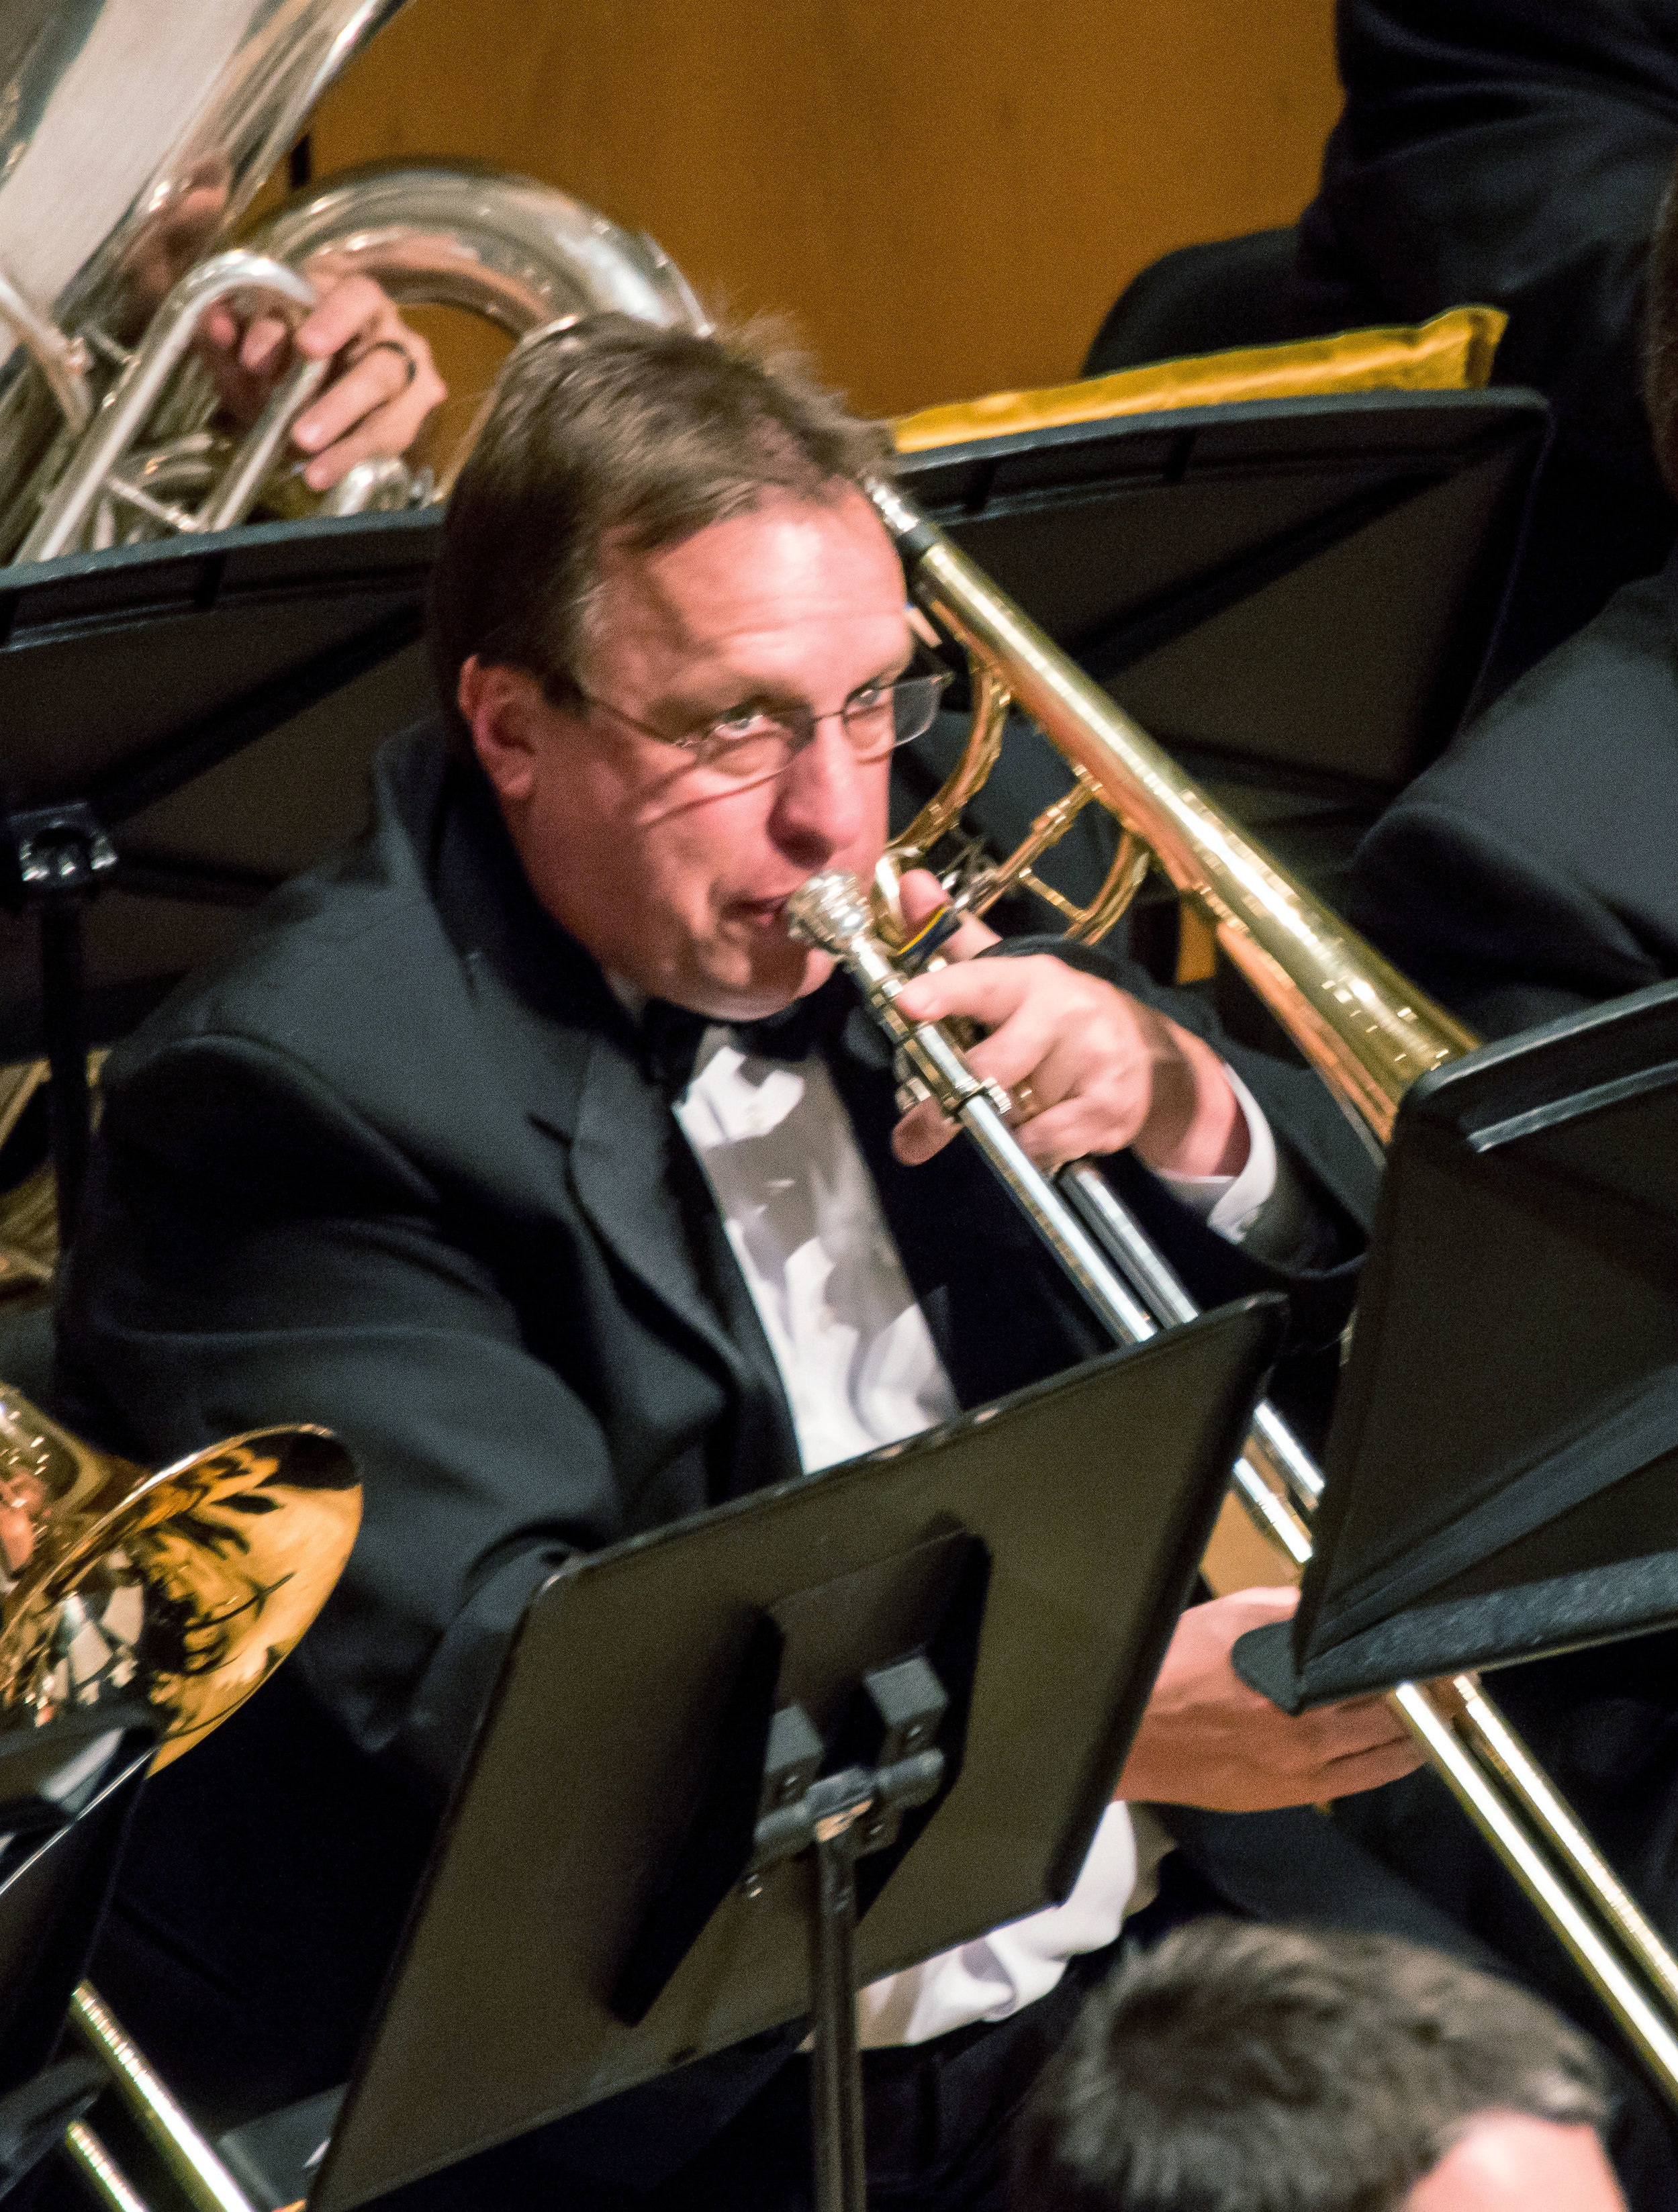 - The Ernst W. Kettnich Award, given in recognition of a lifetime of leadership and distinguished service on behalf of the Northshore Concert Band, was presented to Paul Bauer, trombone.